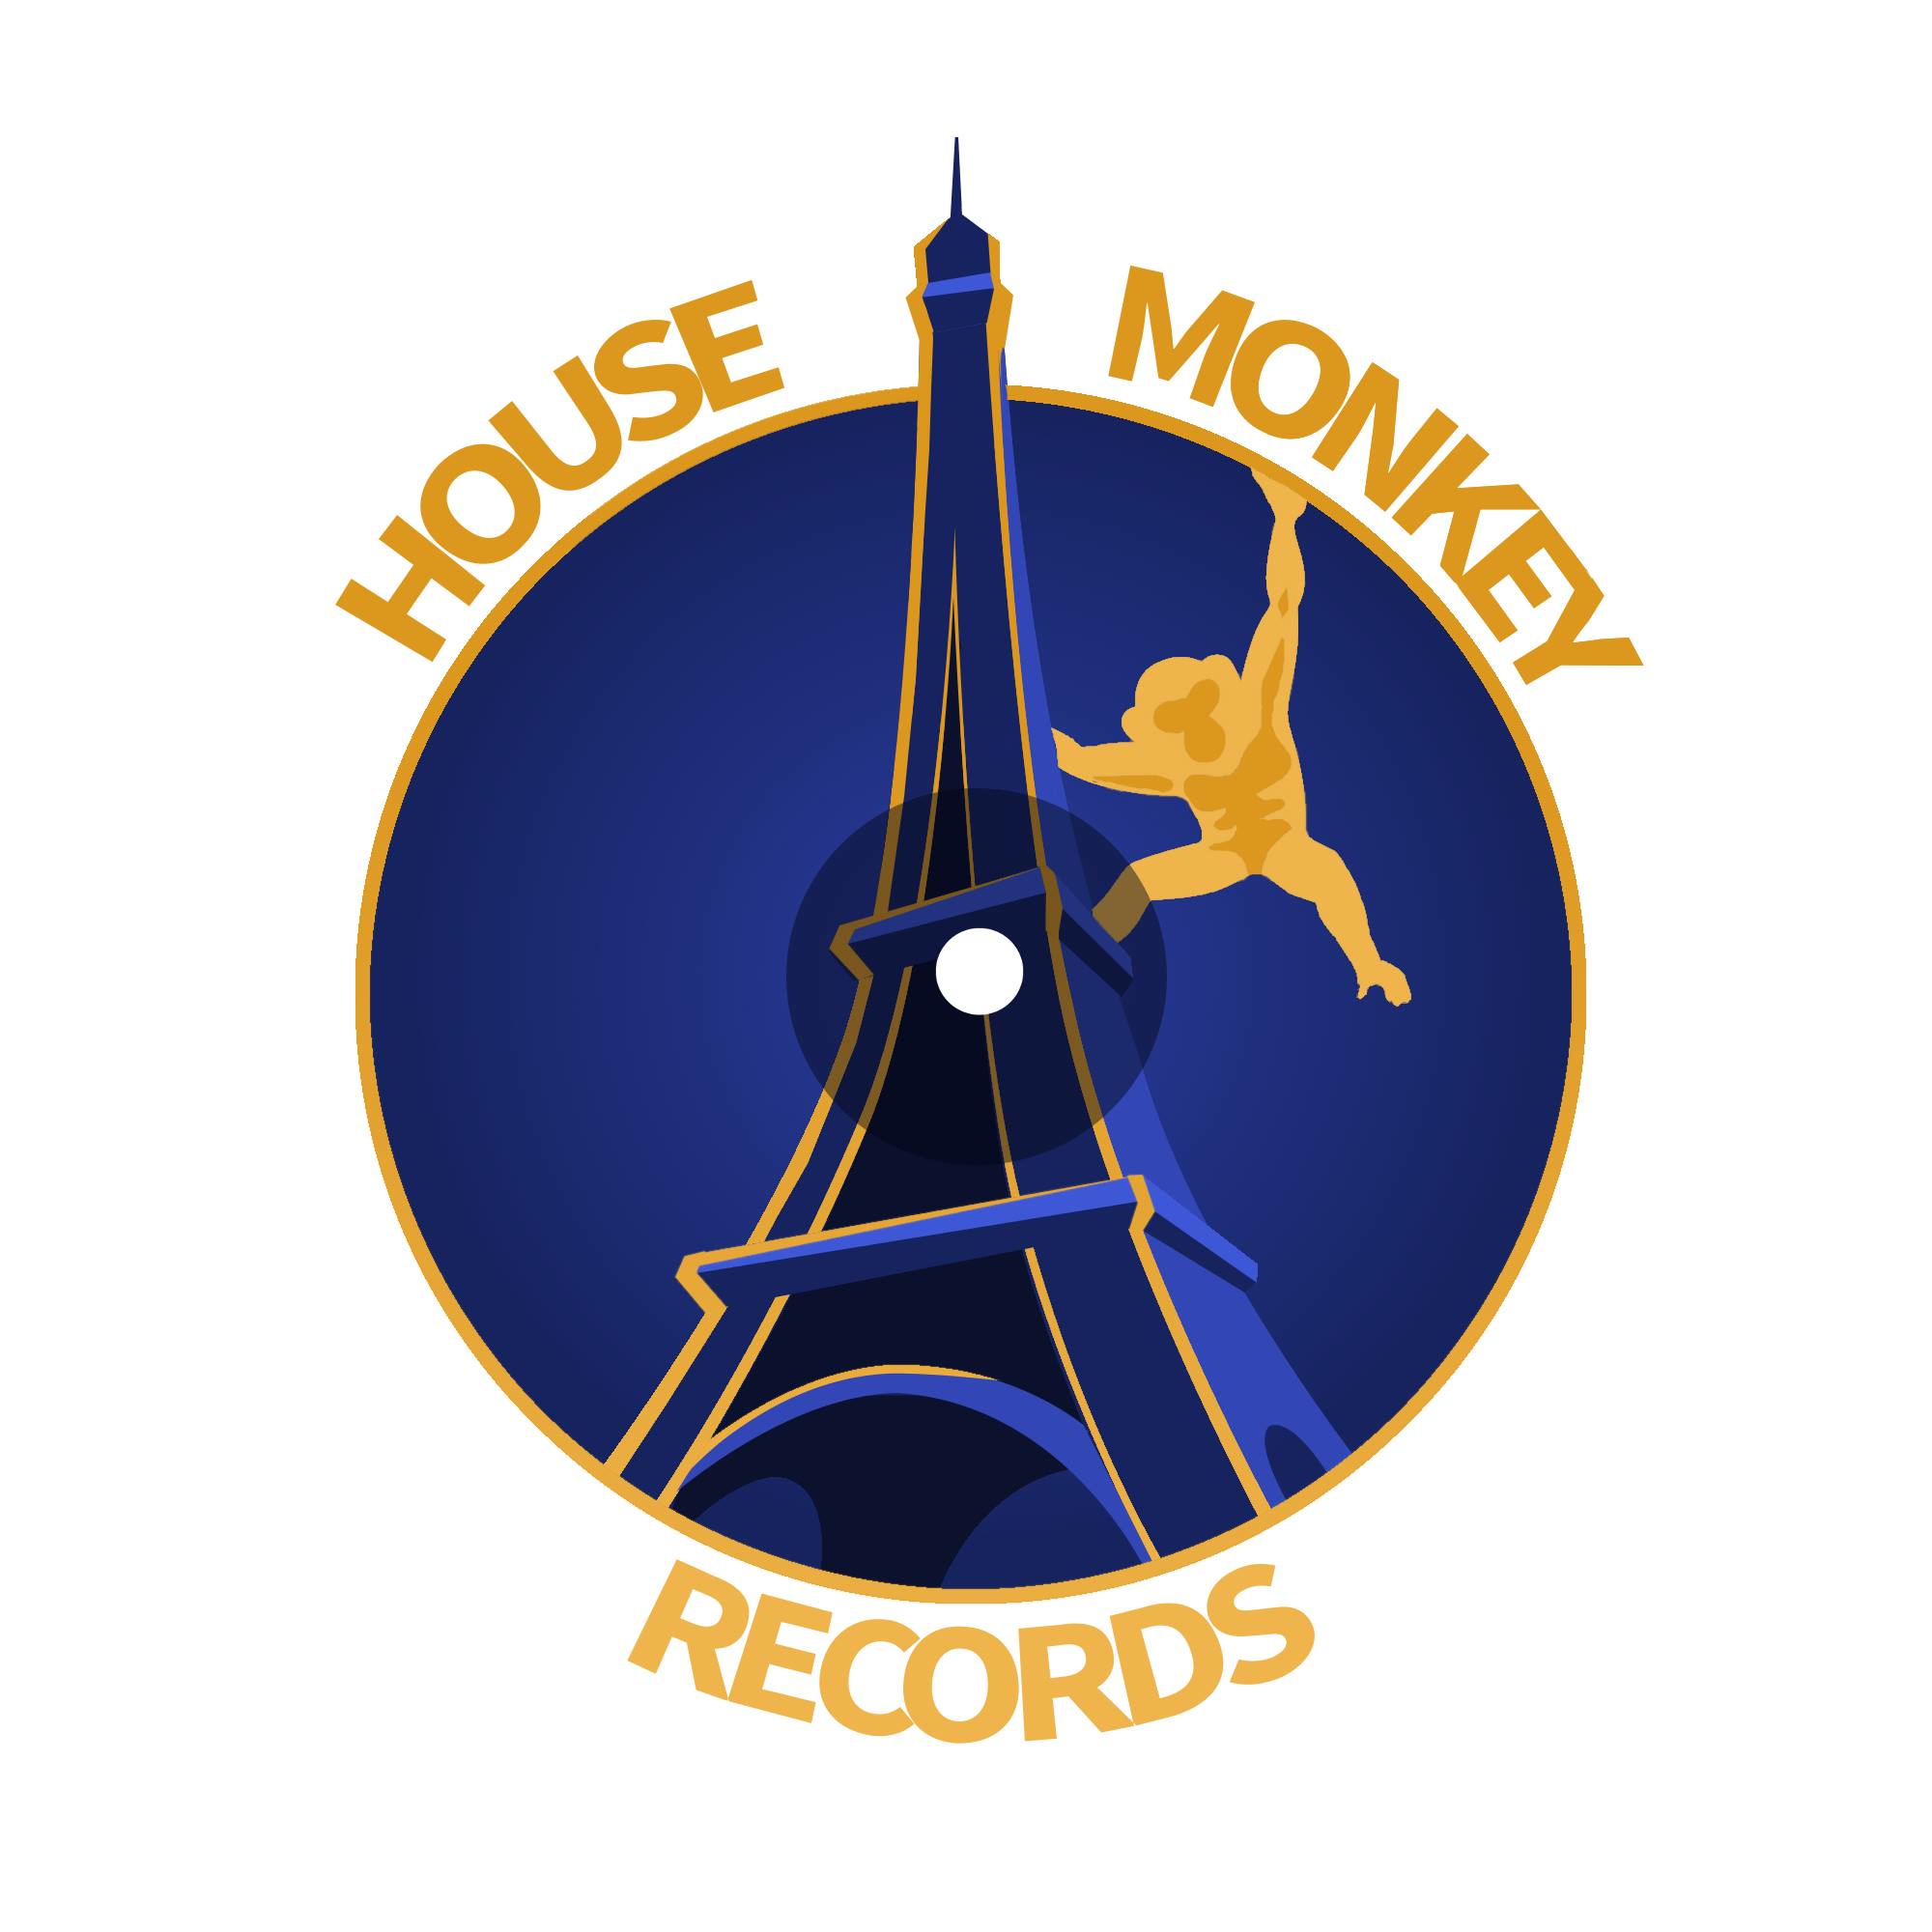 HOUSE MONKEY RECORDS